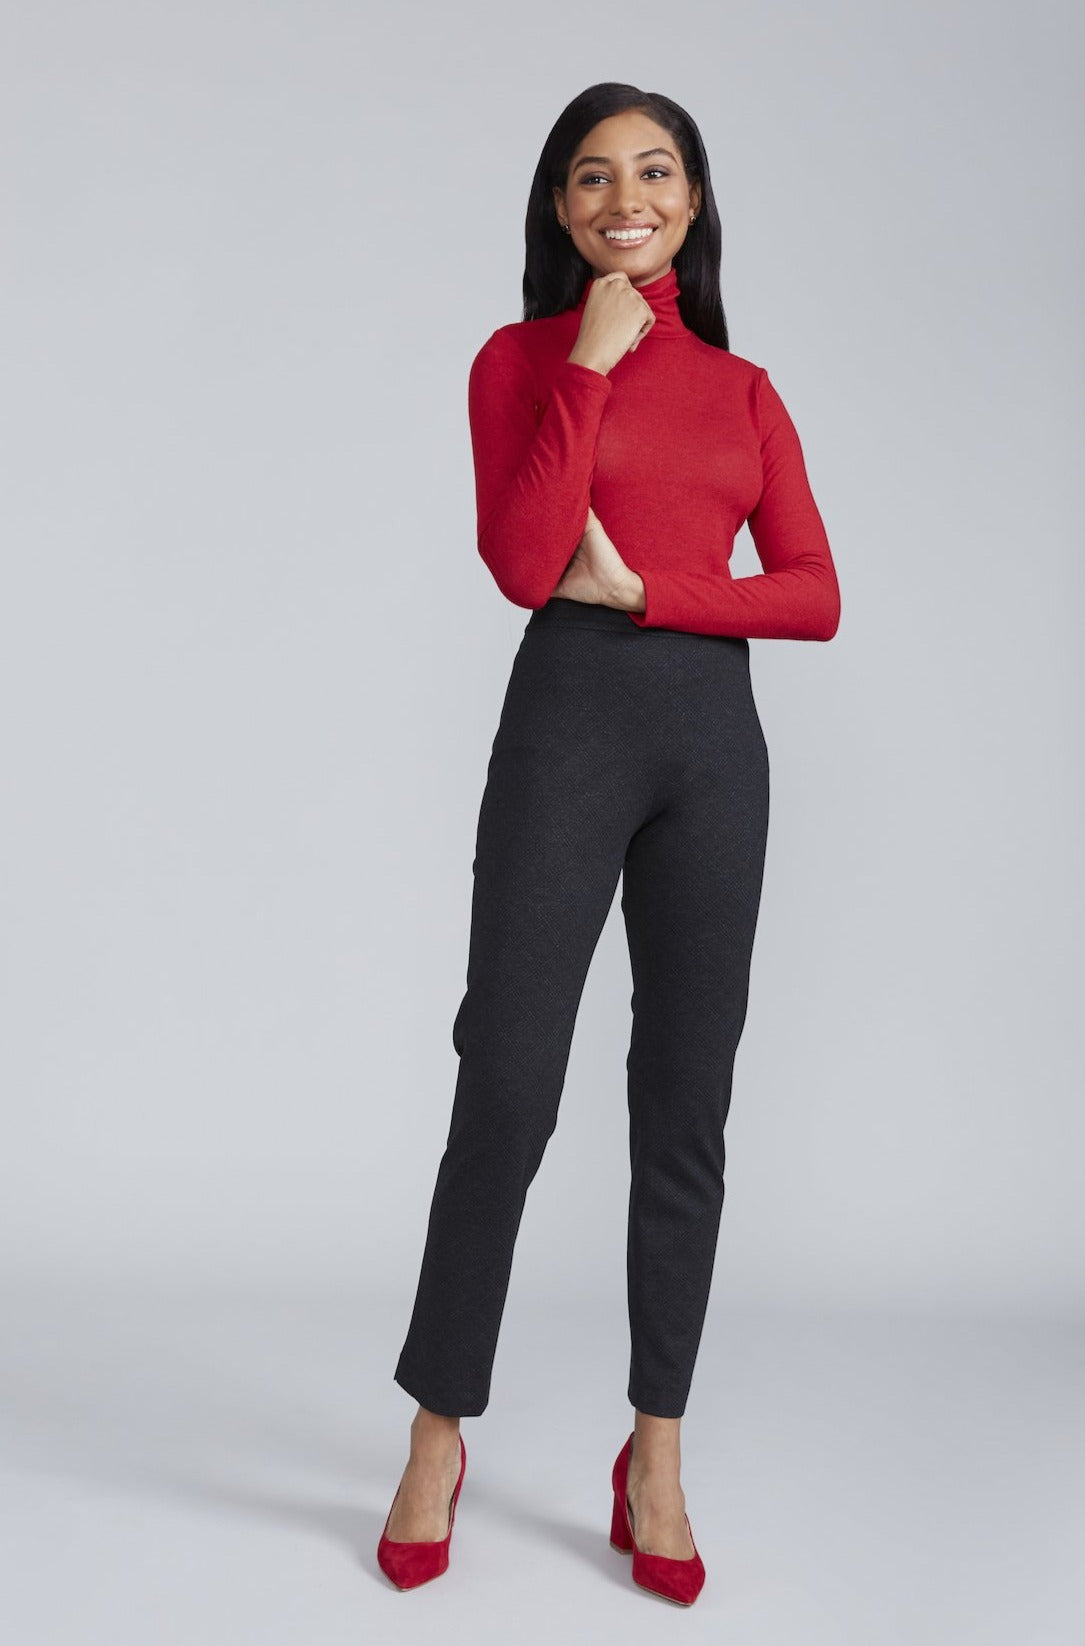 Rosemary Turtleneck Top - Bright Red Pre-order